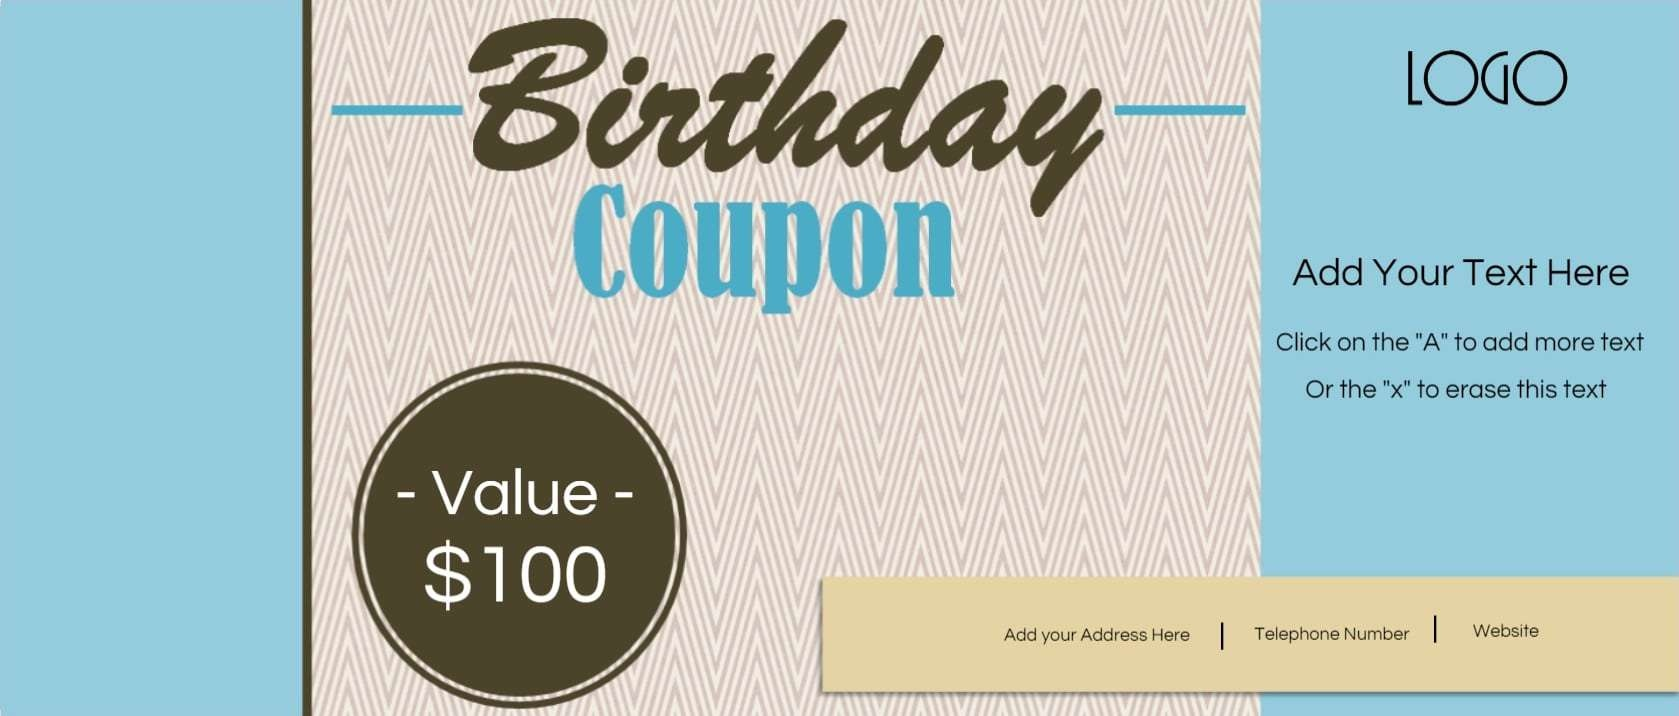 Free Custom Birthday Coupons - Customize Online & Print At Home - Free Printable Blank Birthday Coupons